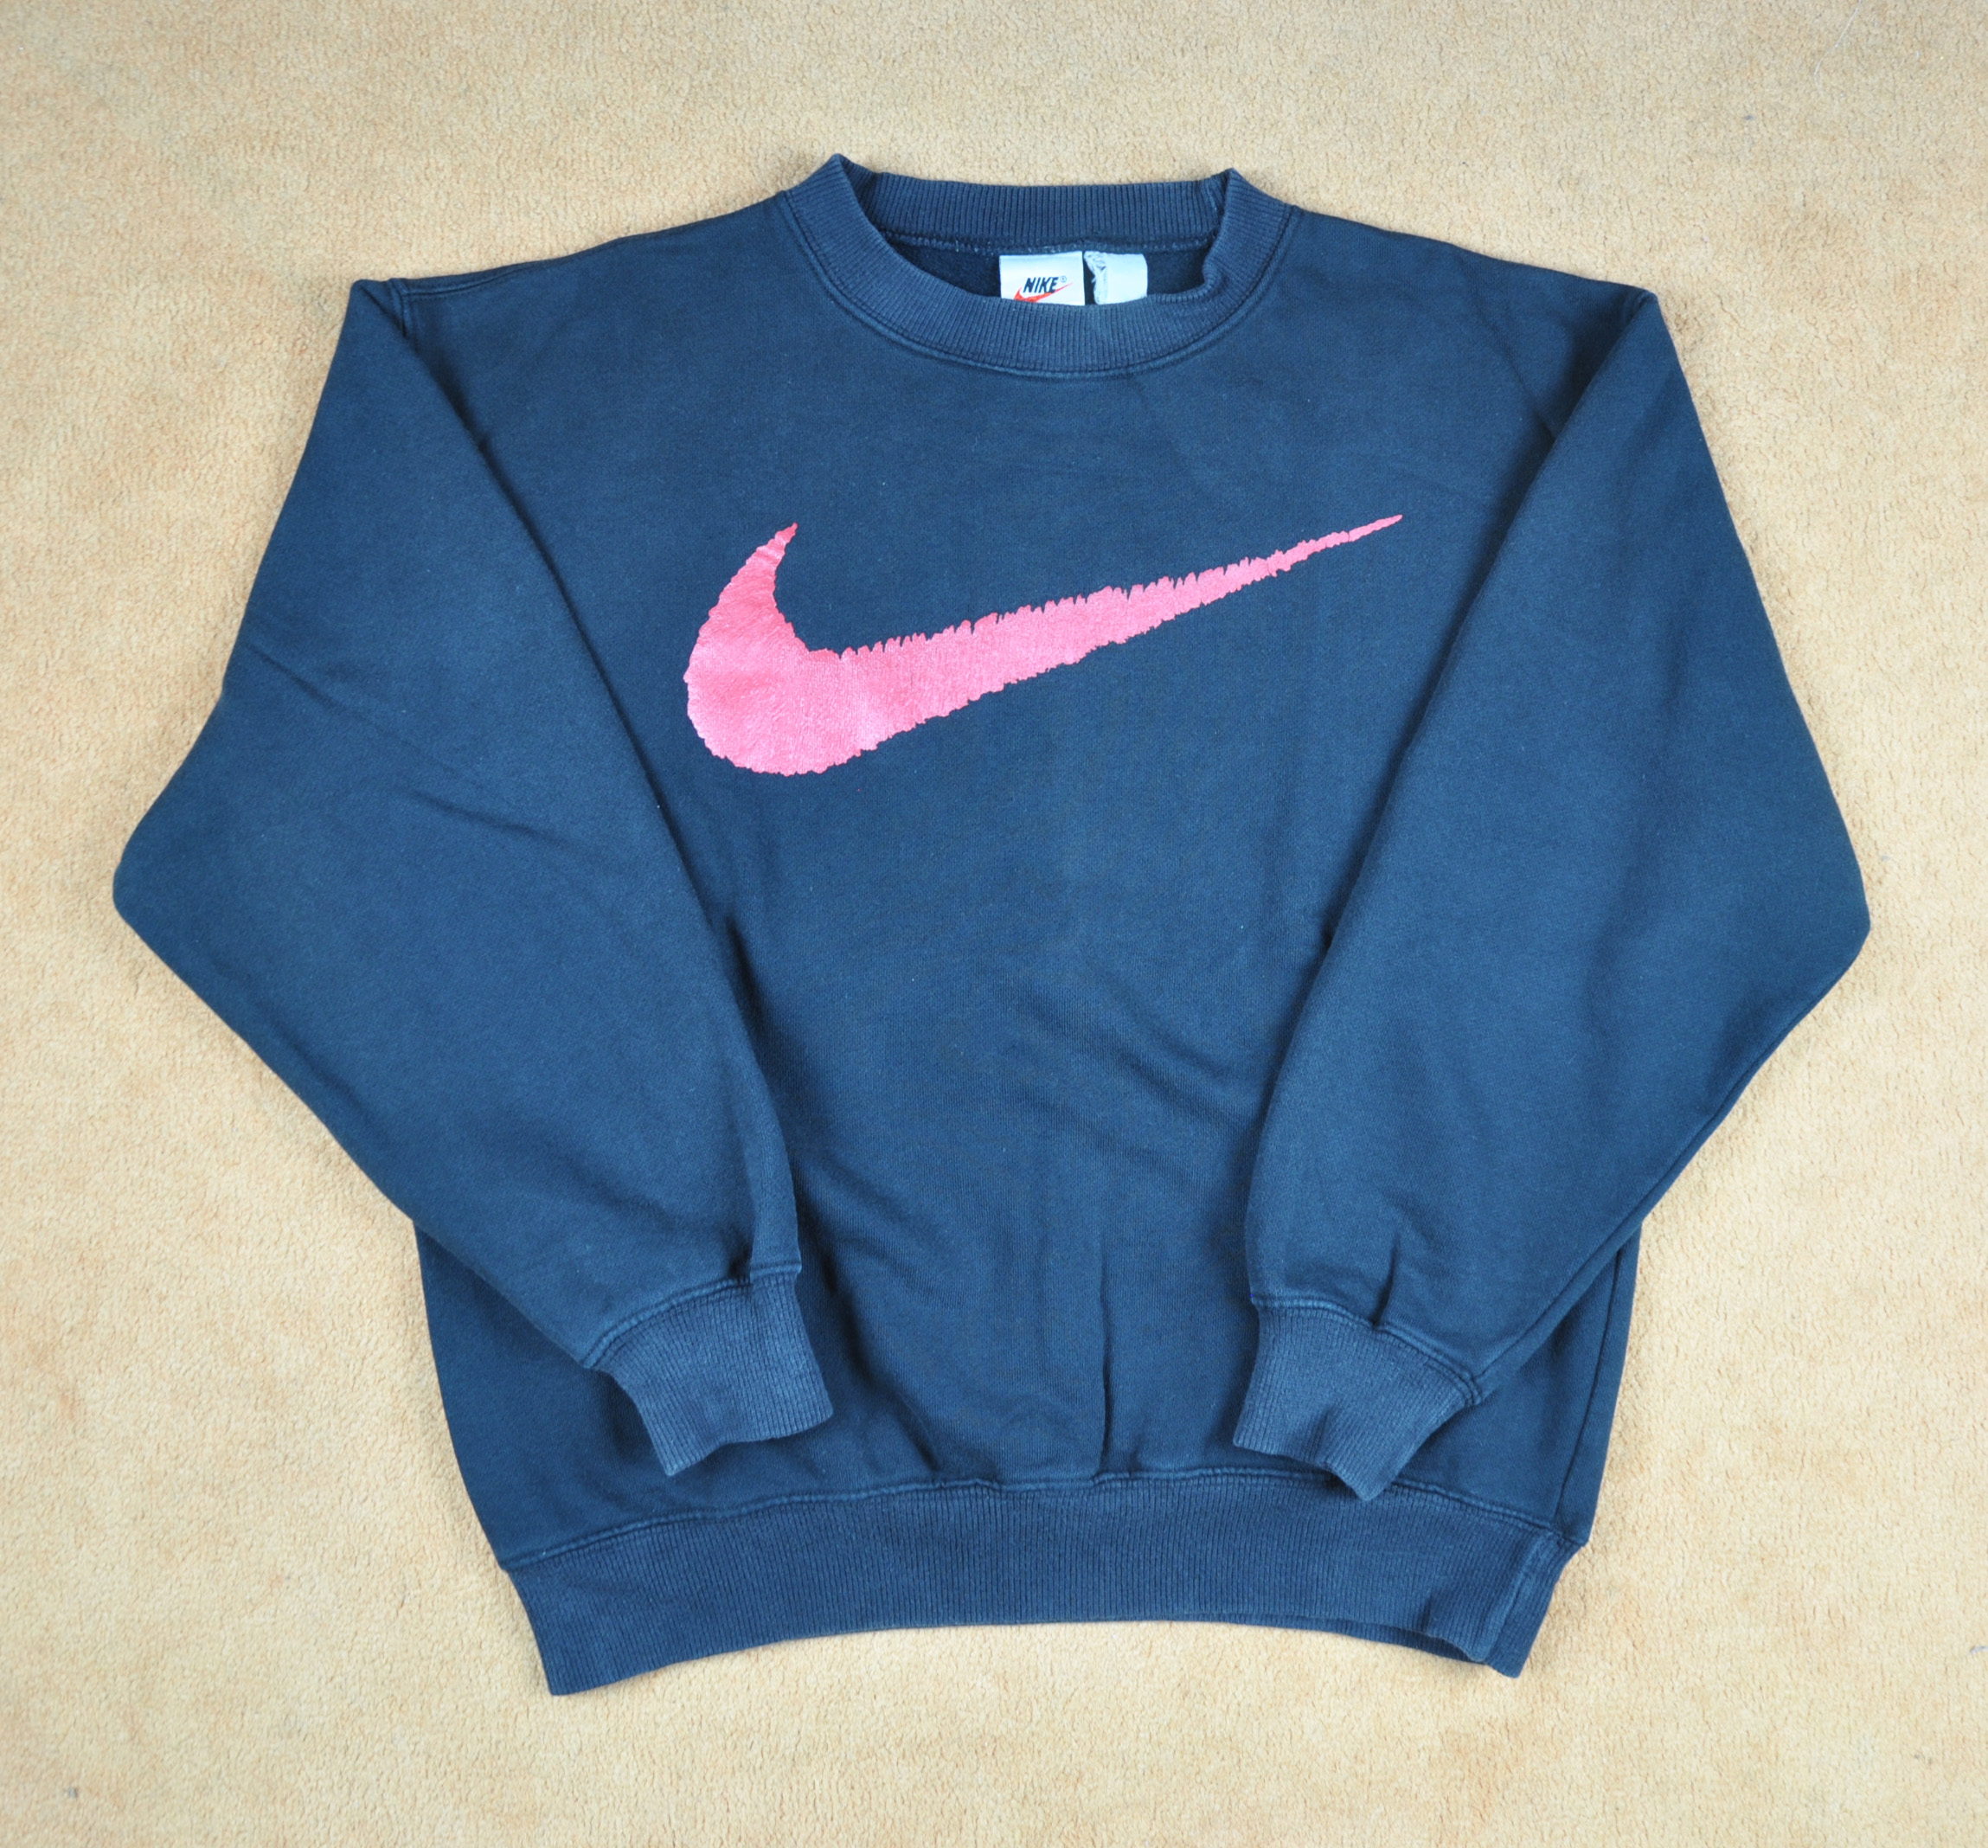 Vintage Nike big logo 90s Sweatshirt sold by JoesecondHAnd